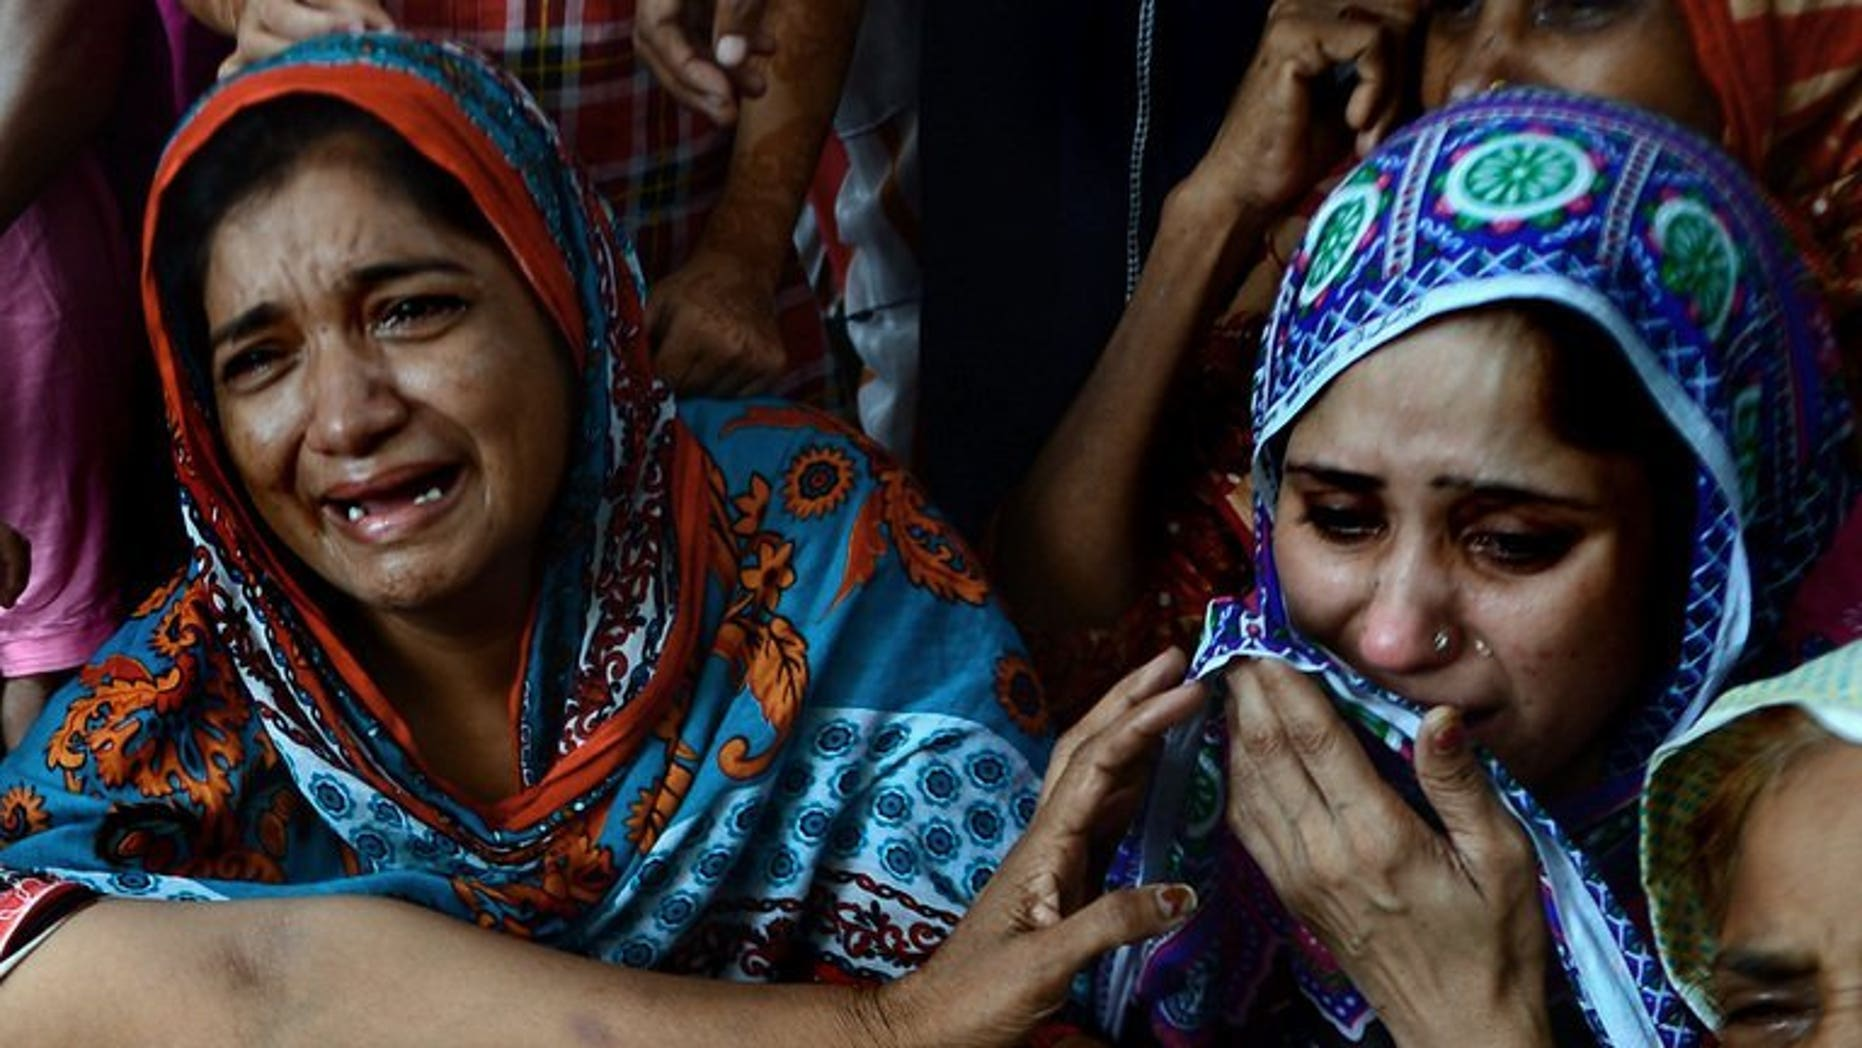 Pakistani women mourn the death of a relative who was killed after drinking toxic liquor in Karachi, on August 11, 2013. Toxic liquor has killed at least 12 people in central Pakistan, according to police and health officials.